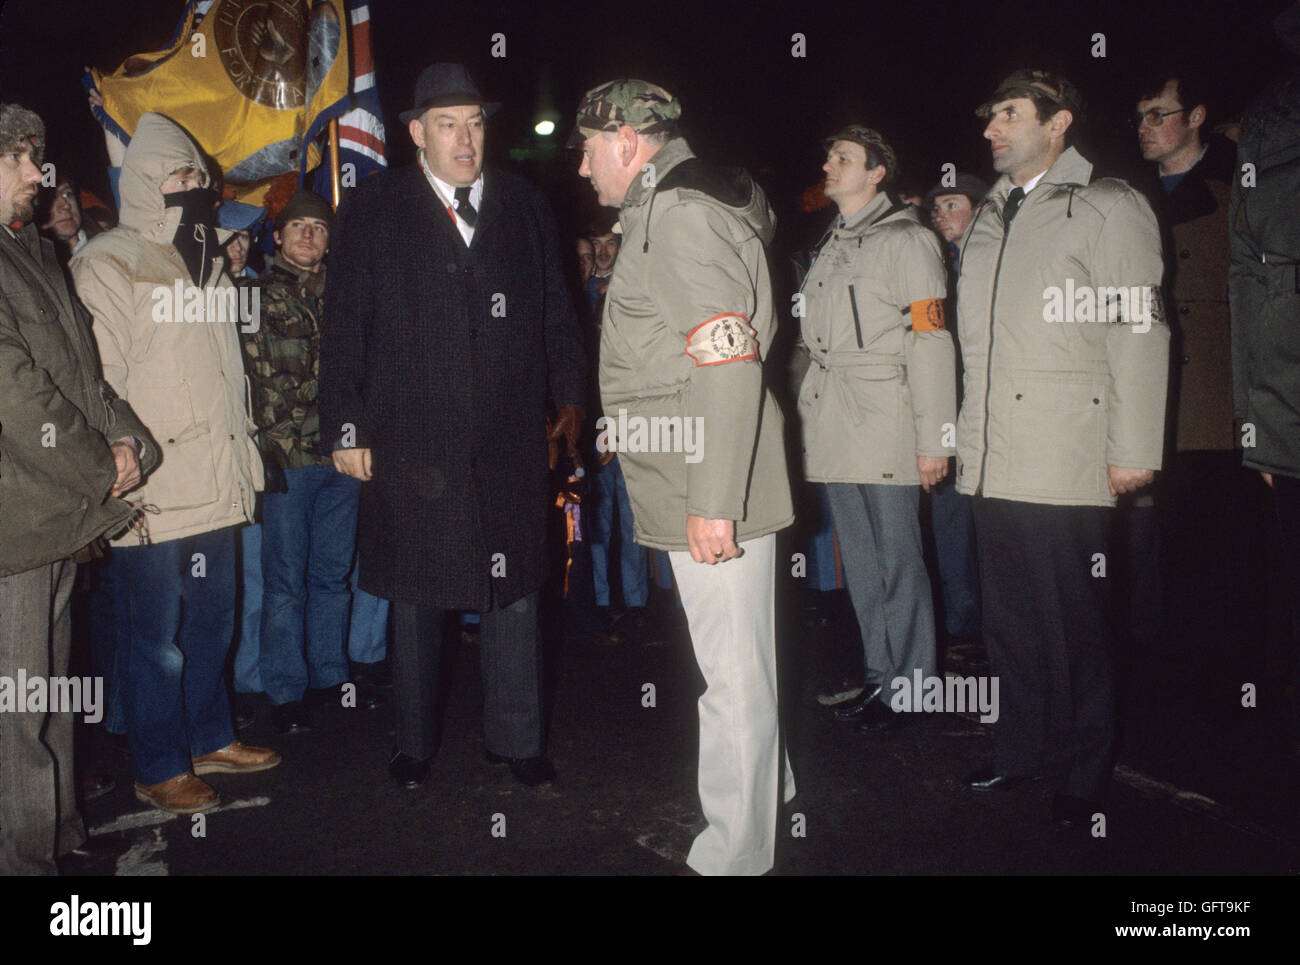 Rev Ian Paisley Northern Ireland with members at 3rd Force meeting at Newtownardes for Loyalist Day of Action. 1980s - Stock Image